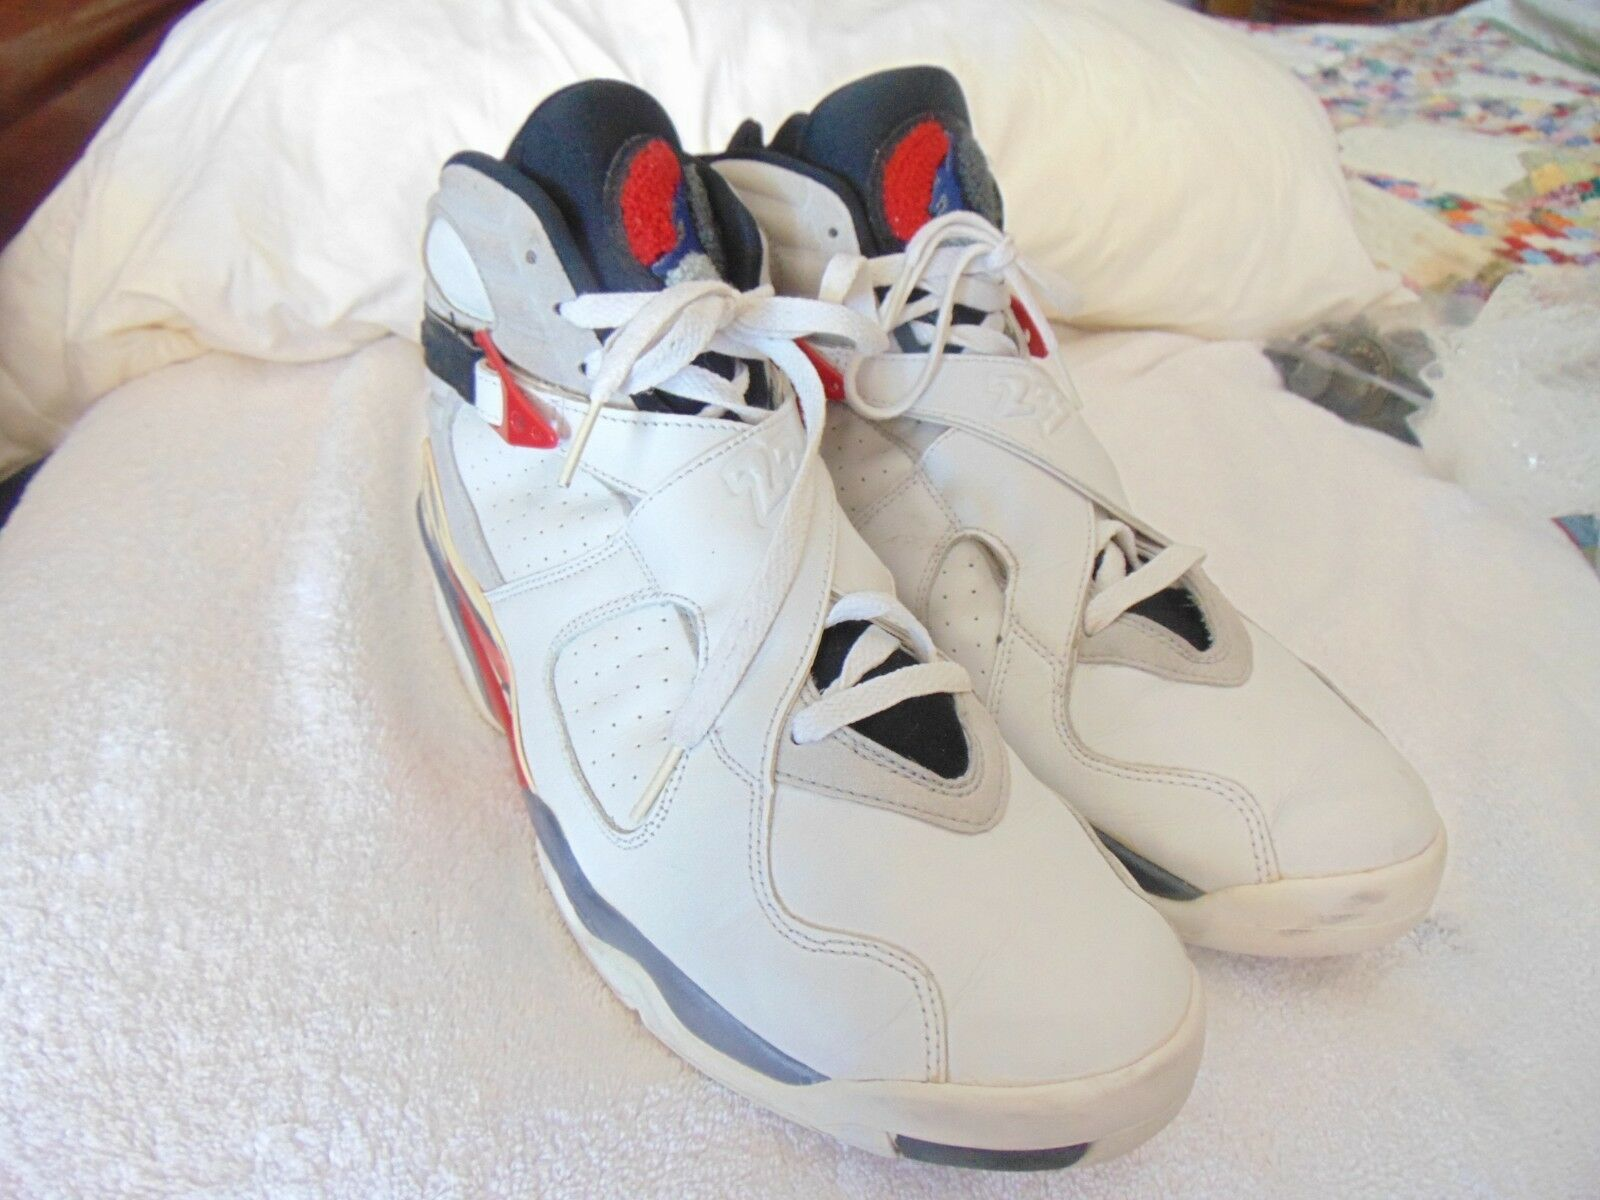 Nike Air Jordan VIII 8 Retro Hare Bugs Bunny 2018 Aqua Chrome VII Pre Owned 13 T The most popular shoes for men and women